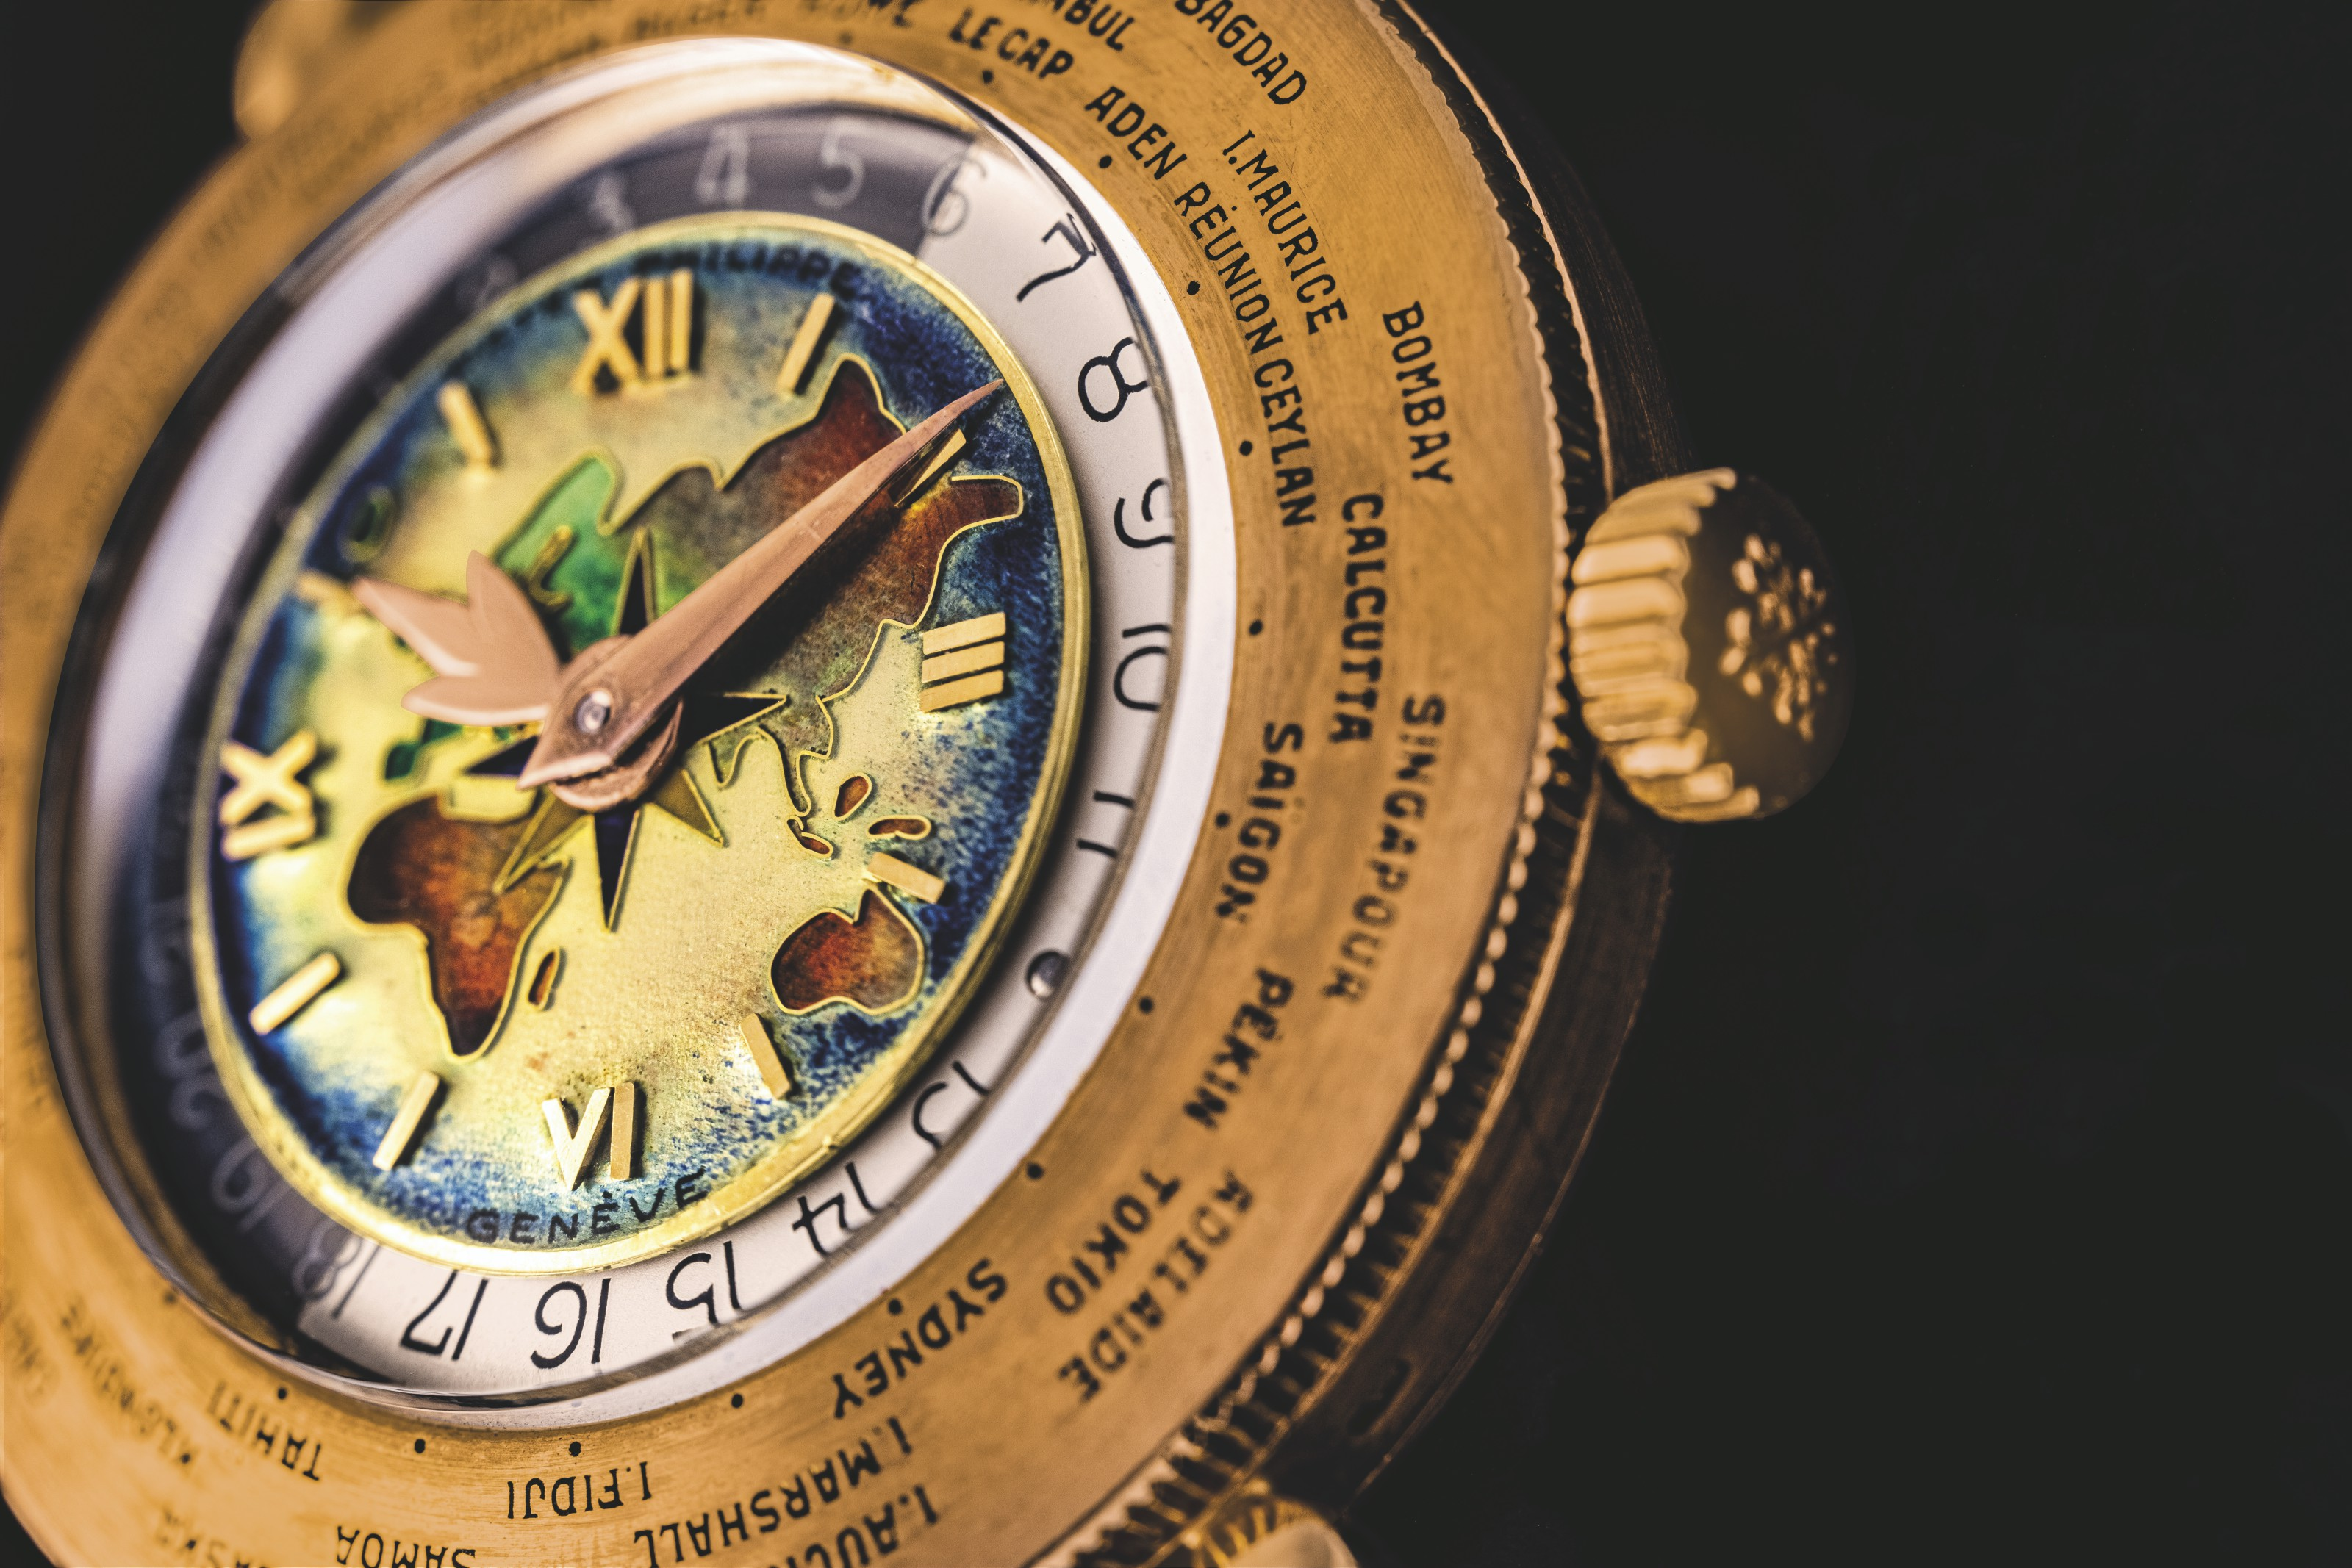 PATEK PHILIPPE. A MAGNIFICENT AND IMPORTANT 18K PINK GOLD WORLD TIME WRISTWATCH WITH ENAMEL DIAL DEPICTING THE EASTERN HEMISPHERE